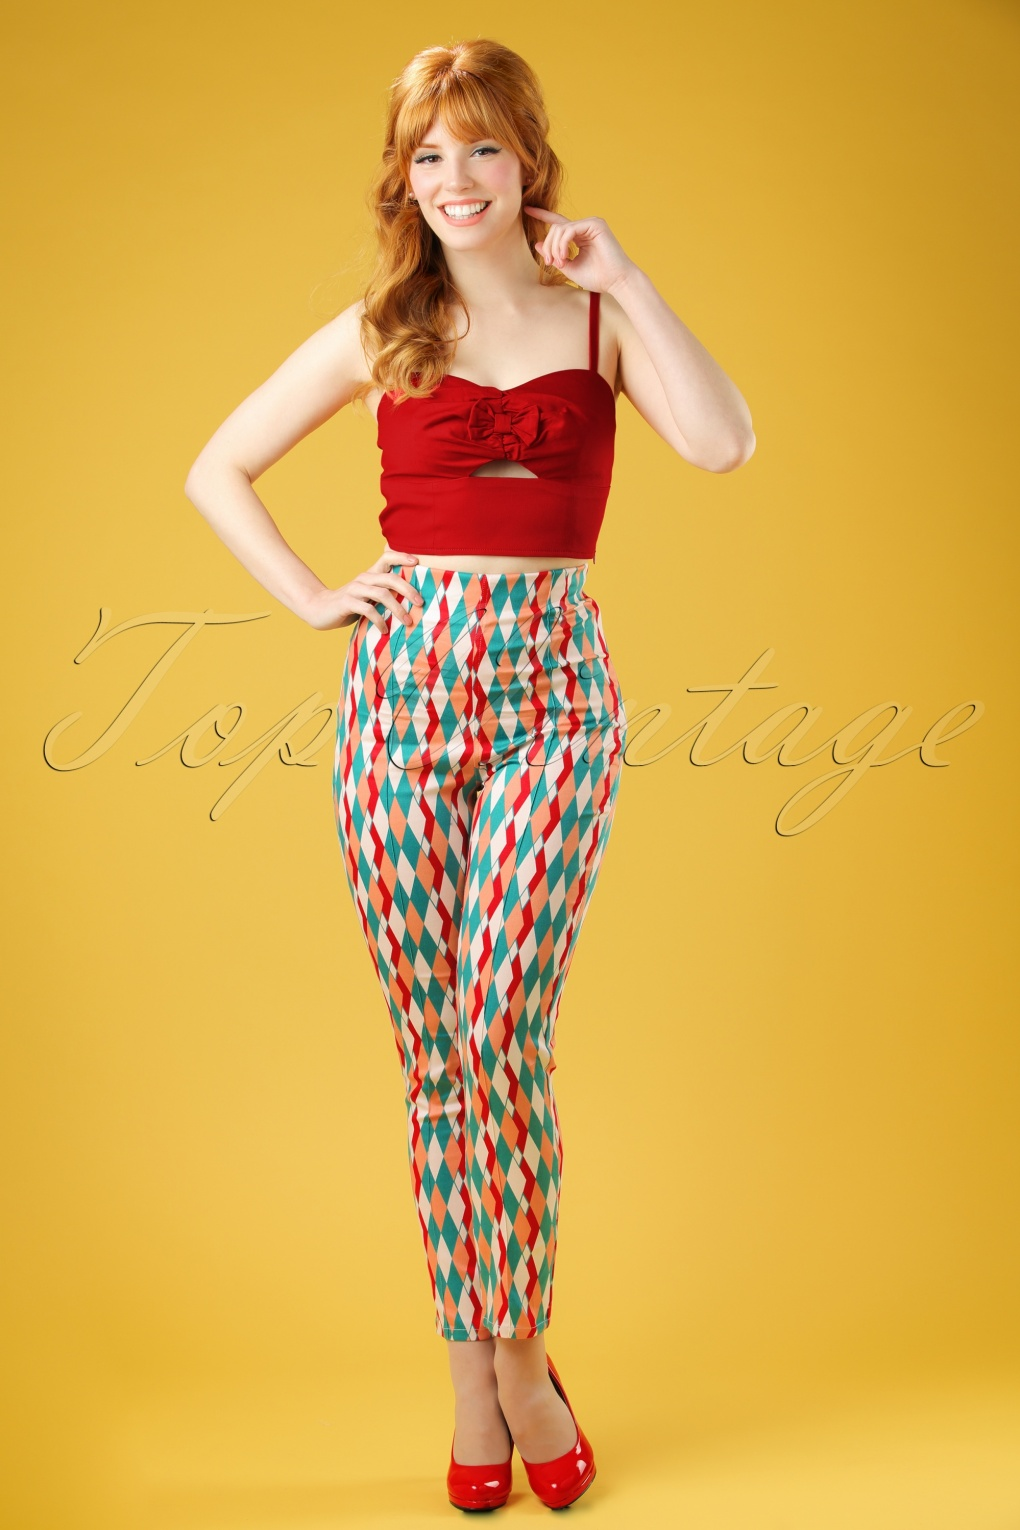 Women's 1960s Style Pants 50s Bonnie Atomic Harlequin Trousers in Red and Jade £25.00 AT vintagedancer.com